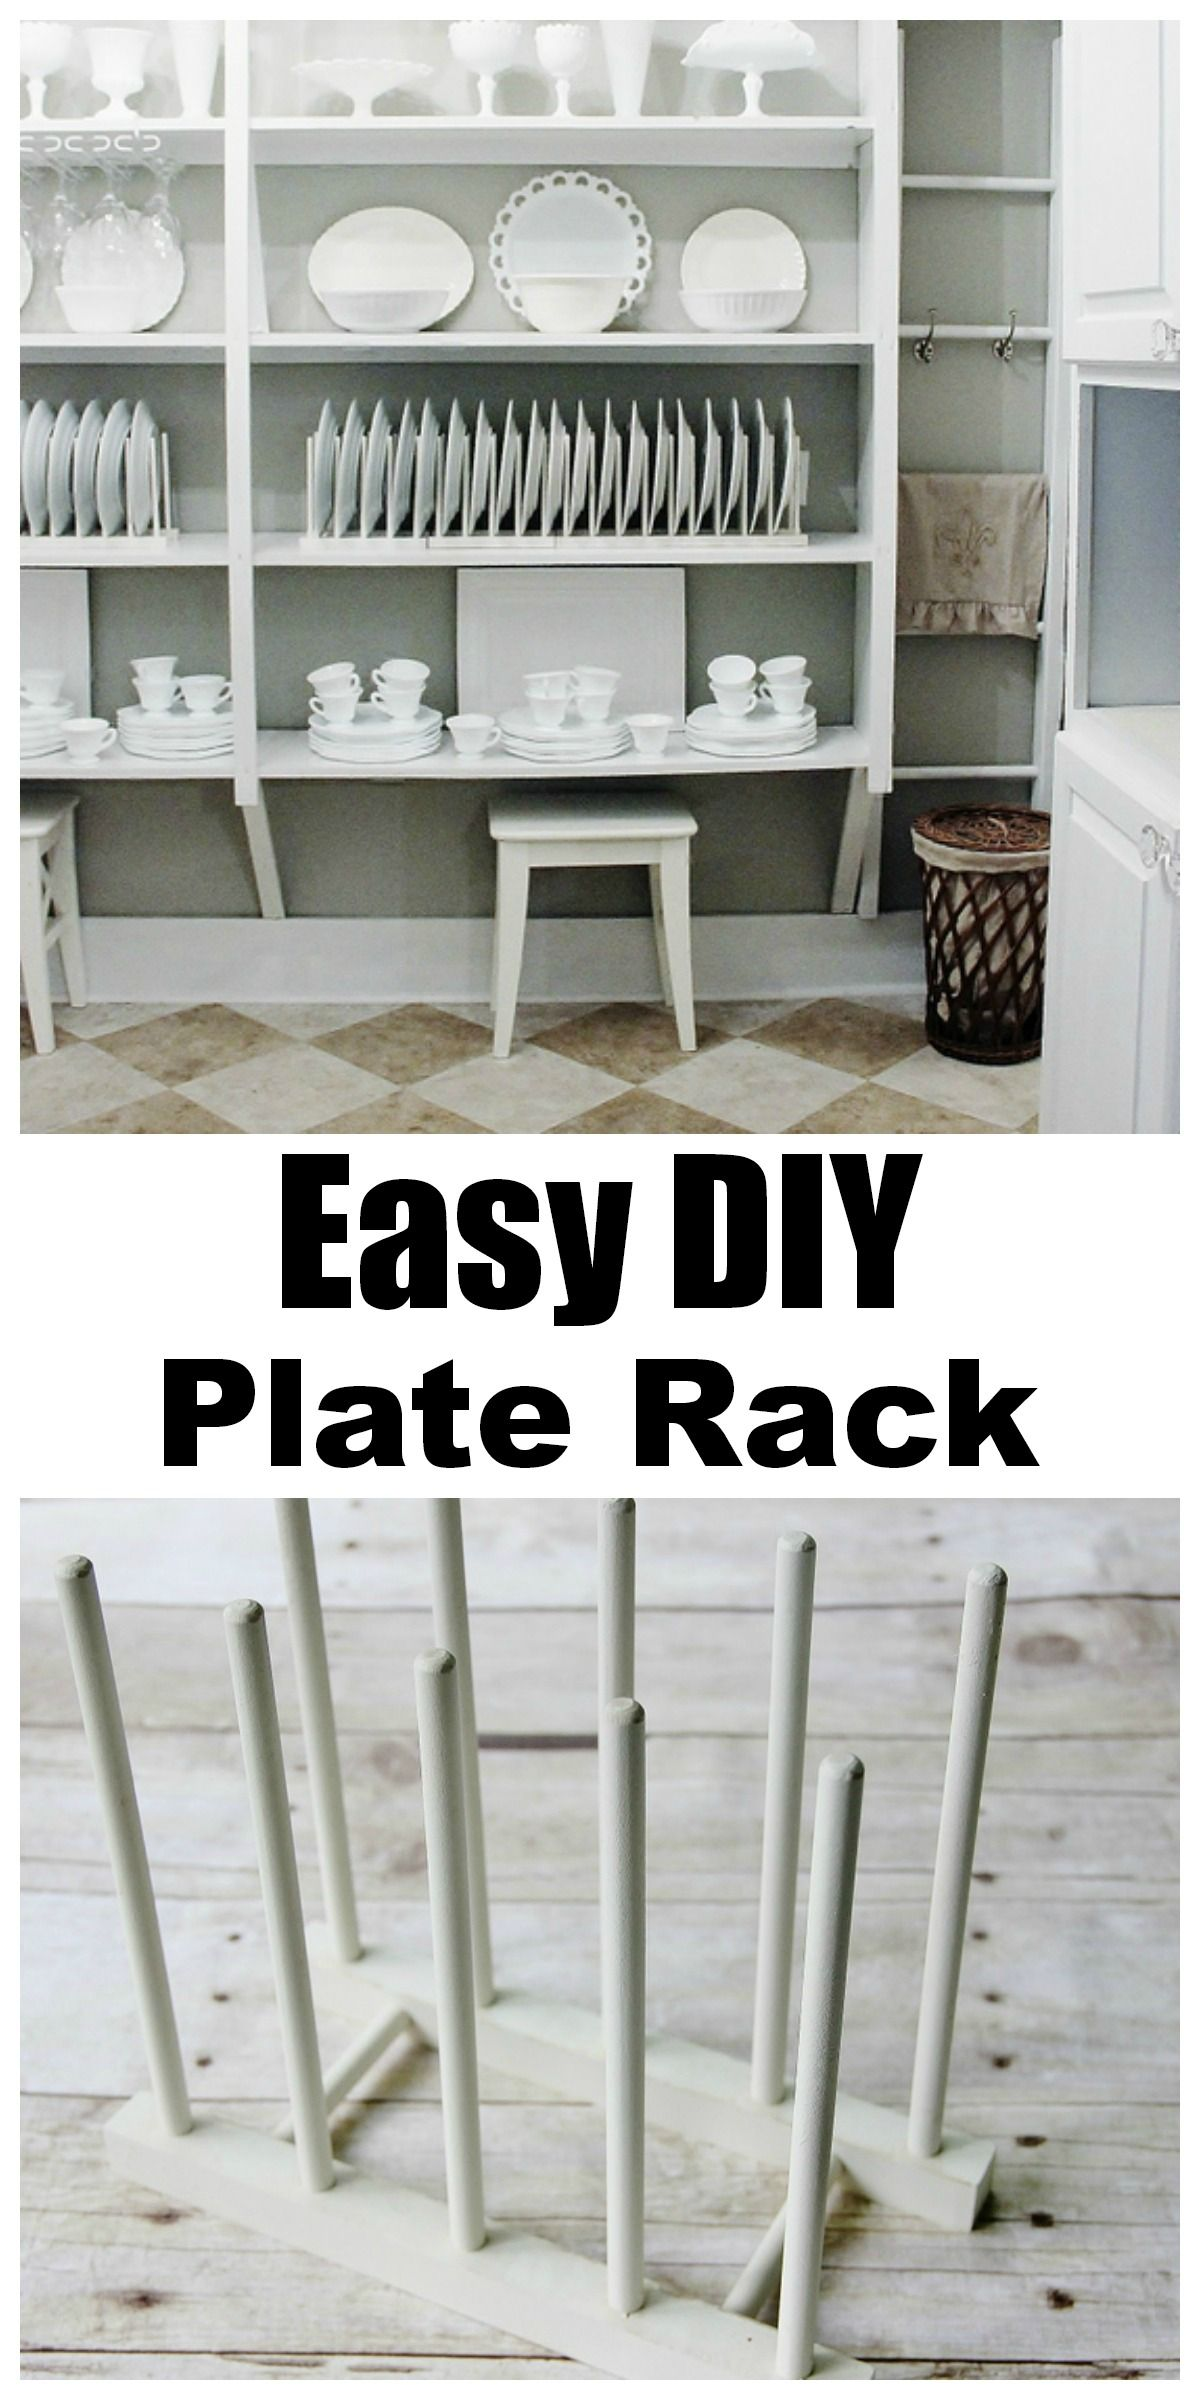 Simple Kitchen Racks simple plate display rack | plate racks, custom plates and pantry